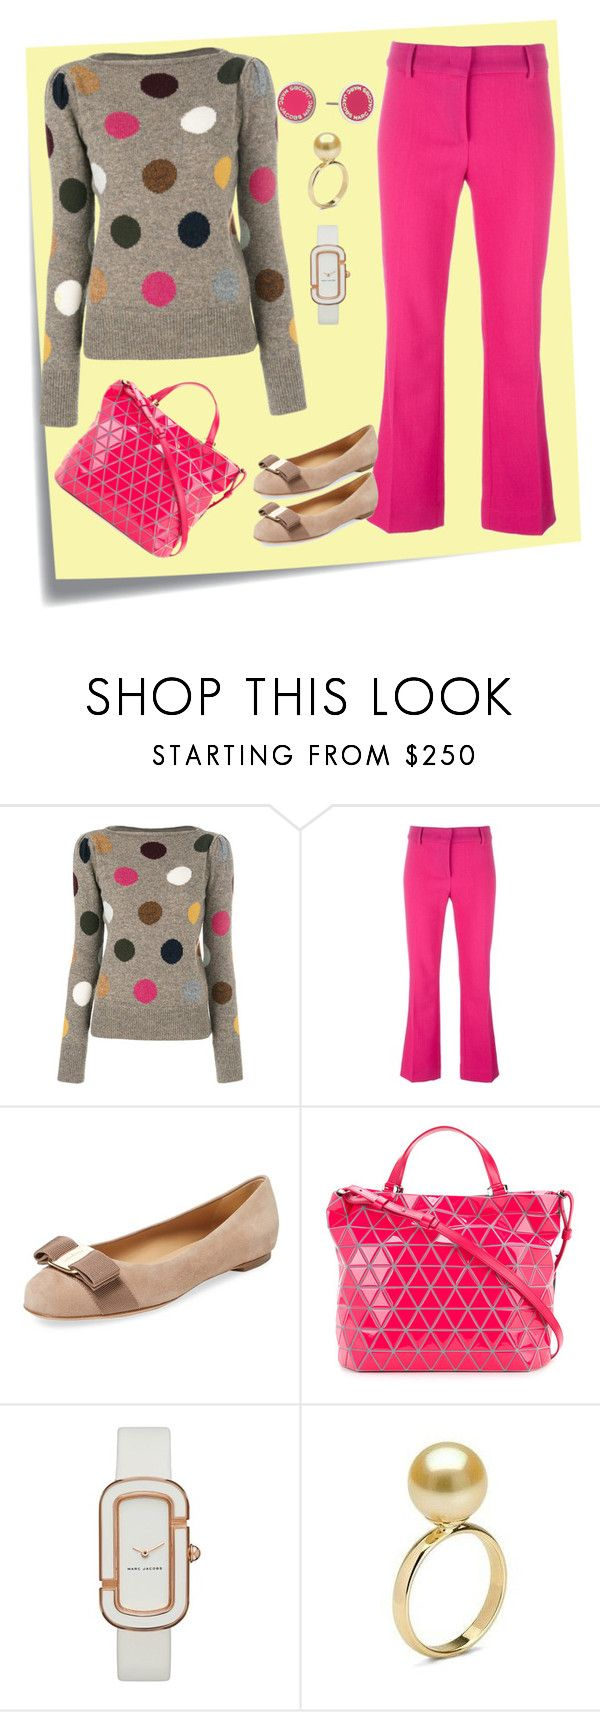 """Office Wardrobe"" by cynthiahawthorne ❤ liked on Polyvore featuring Post-It, Marc Jacobs, Cédric Charlier, Salvatore Ferragamo, Bao Bao by Issey Miyake and Marc by Marc Jacobs"